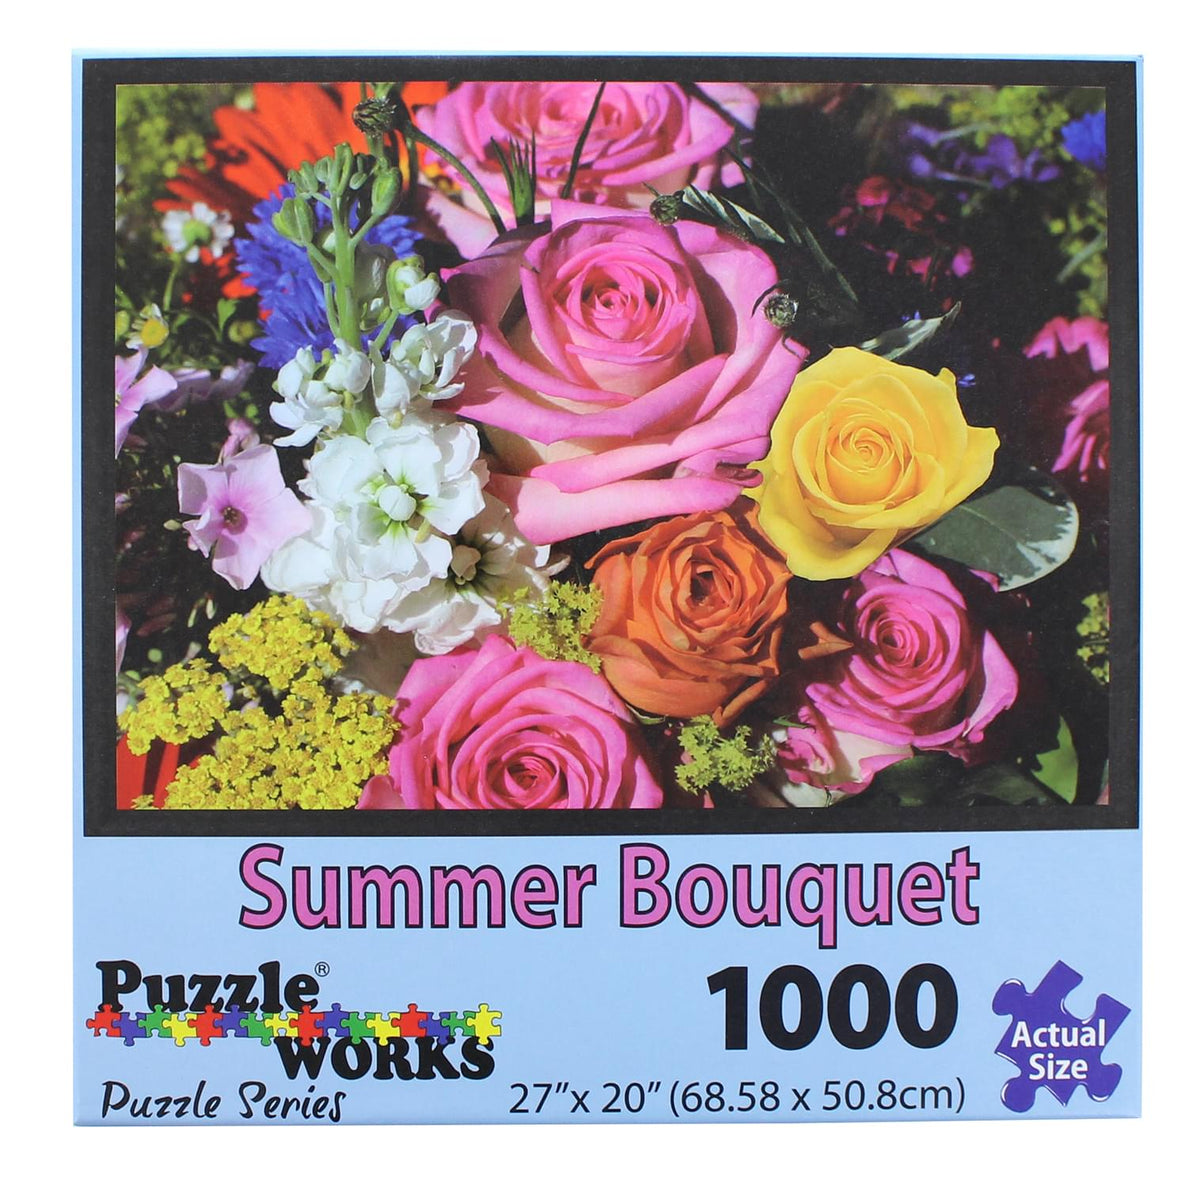 PuzzleWorks 1000 Piece Jigsaw Puzzle | Summer Bouquet